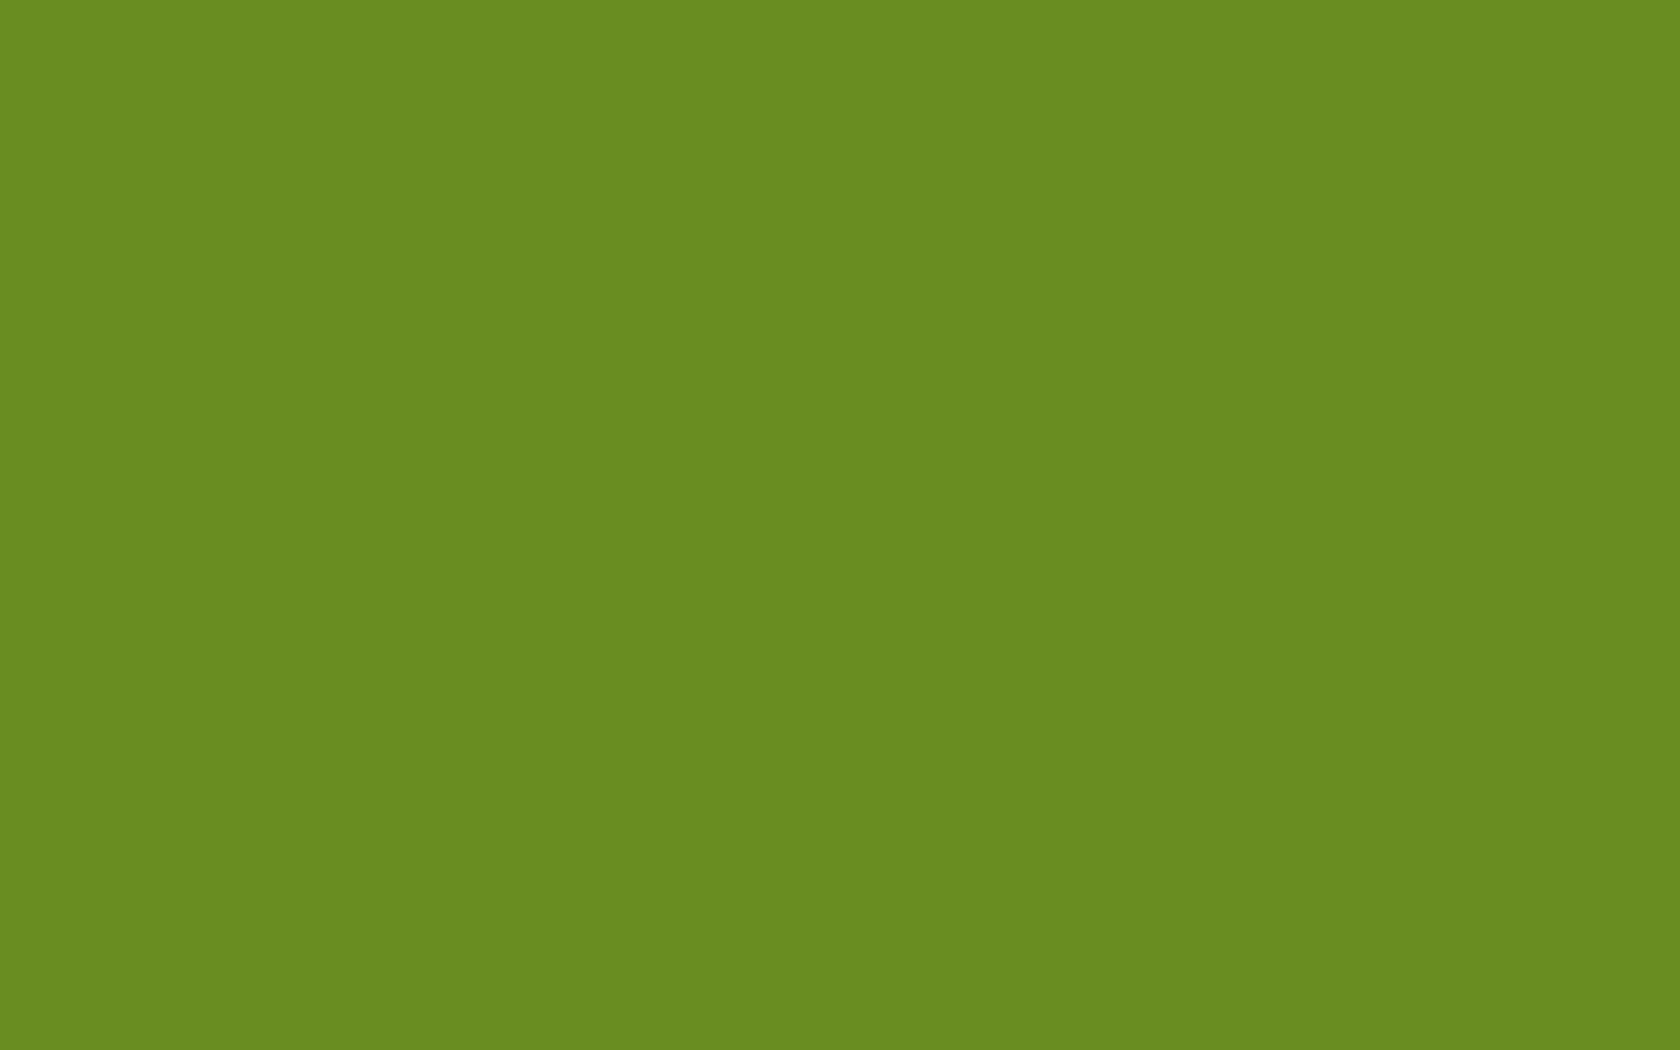 1680x1050 Olive Drab Number Three Solid Color Background